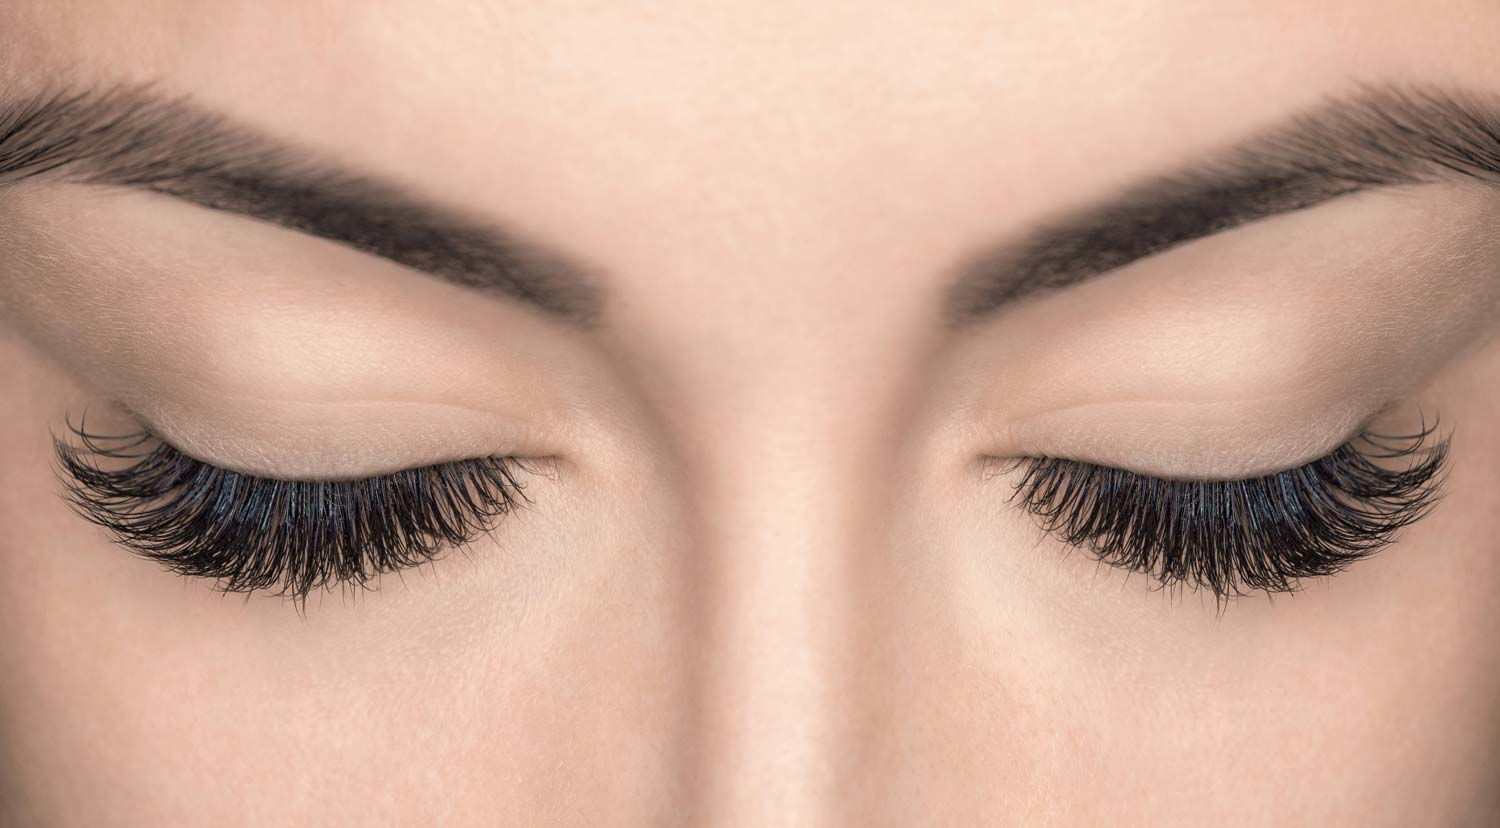 Top 5 eyelashes under AED 10 for an everyday glam look